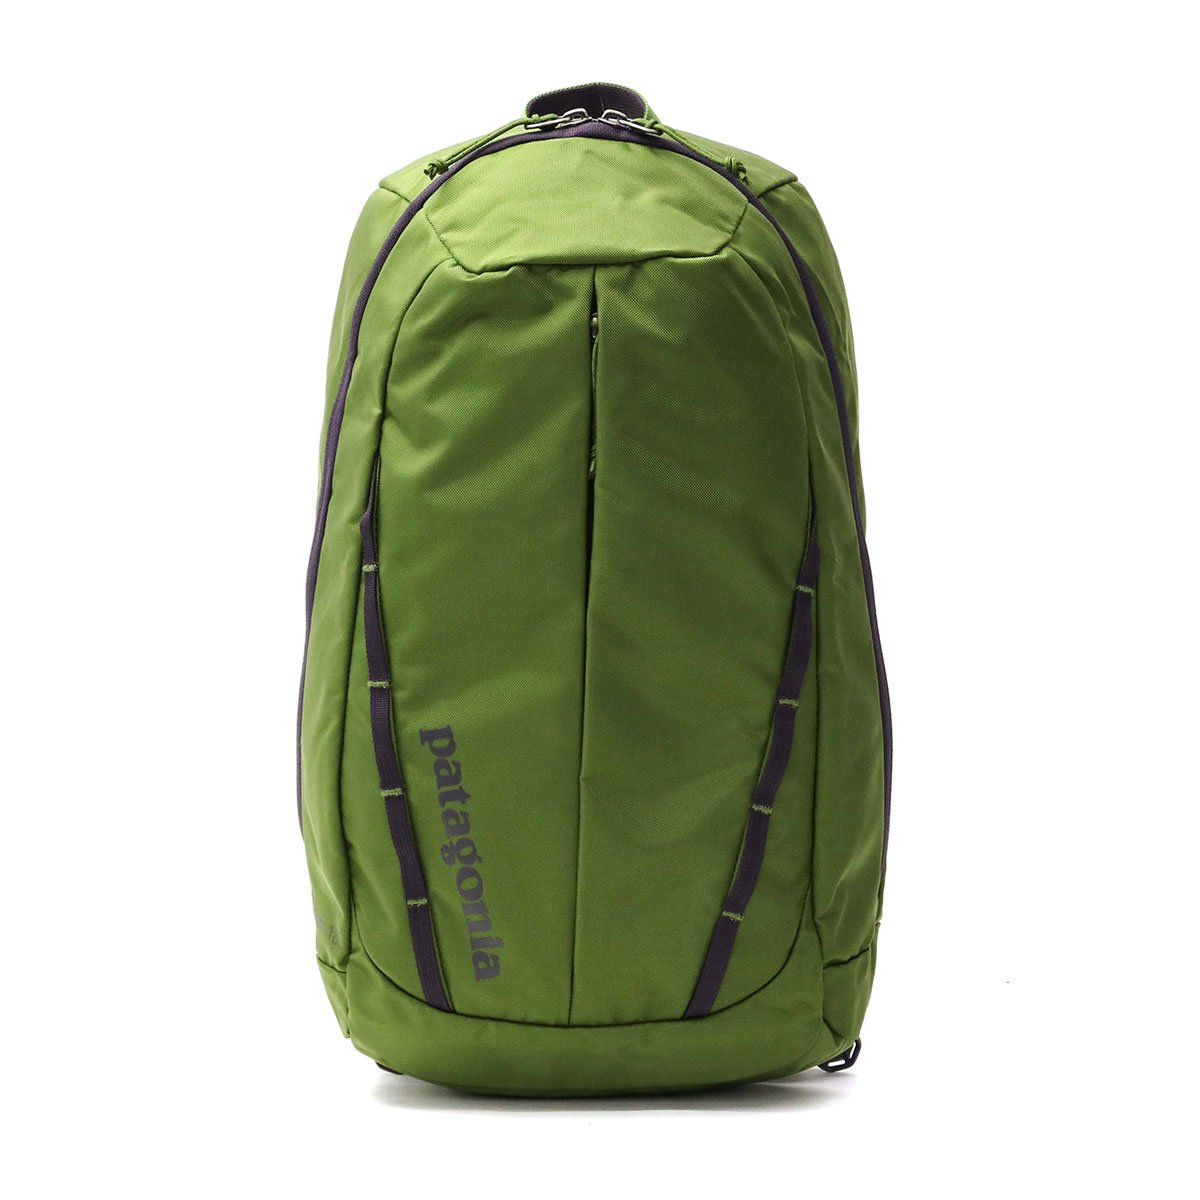 [パタゴニア]patagonia アトムパック Atom Pack 18L リュックサック 48290 B078TBLFMX Sprouted Green(SPTG) Sprouted Green(SPTG)